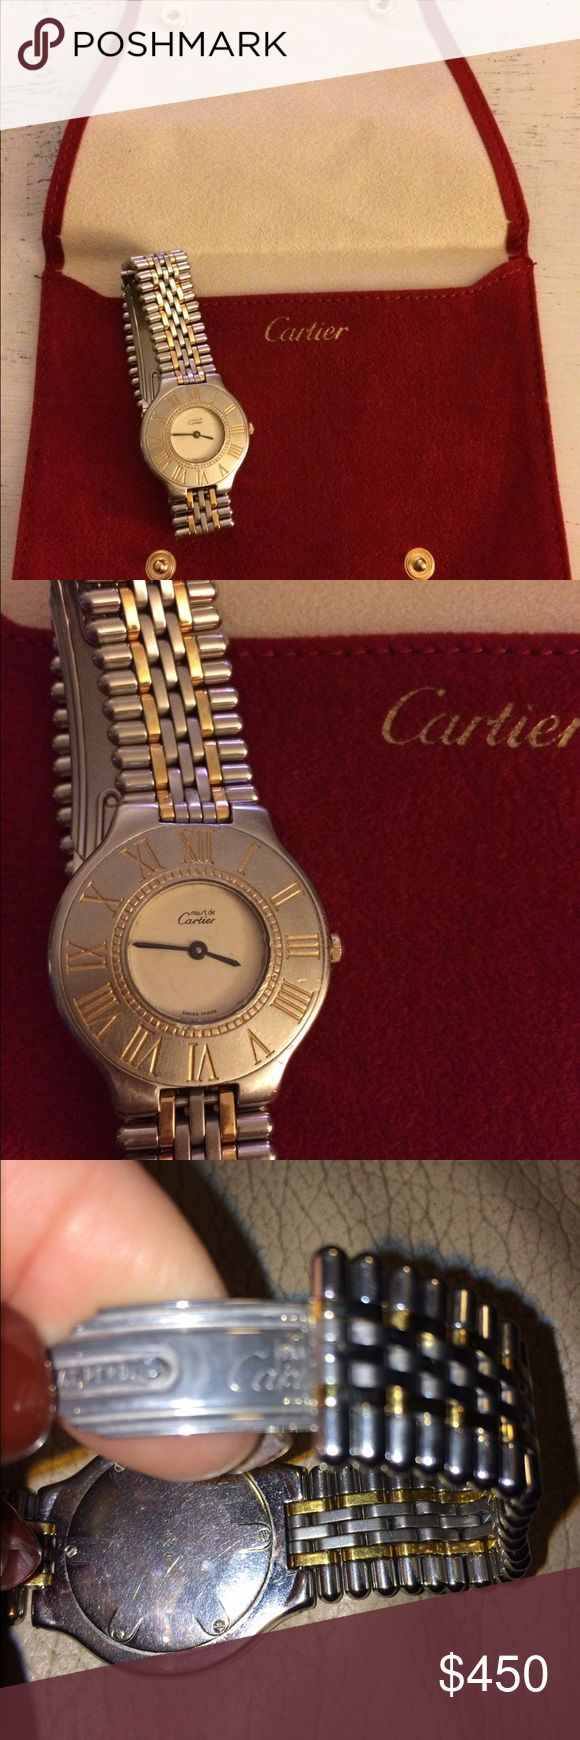 ⚡Cartier Vintage Must de Cartier Timepiece My very worn Cartier watch is looking for a home! I am the original owner, it is worn, 3 scratches on the face, yet keeps perfect time! Fit for my 7 inch wrist, links can be removed though! Please ask questions, own a piece of timeless and classic jewelry. Suede Cartier pouch is included!😀 Reasonable offers to serious buyers accepted! Cartier Accessories Watches